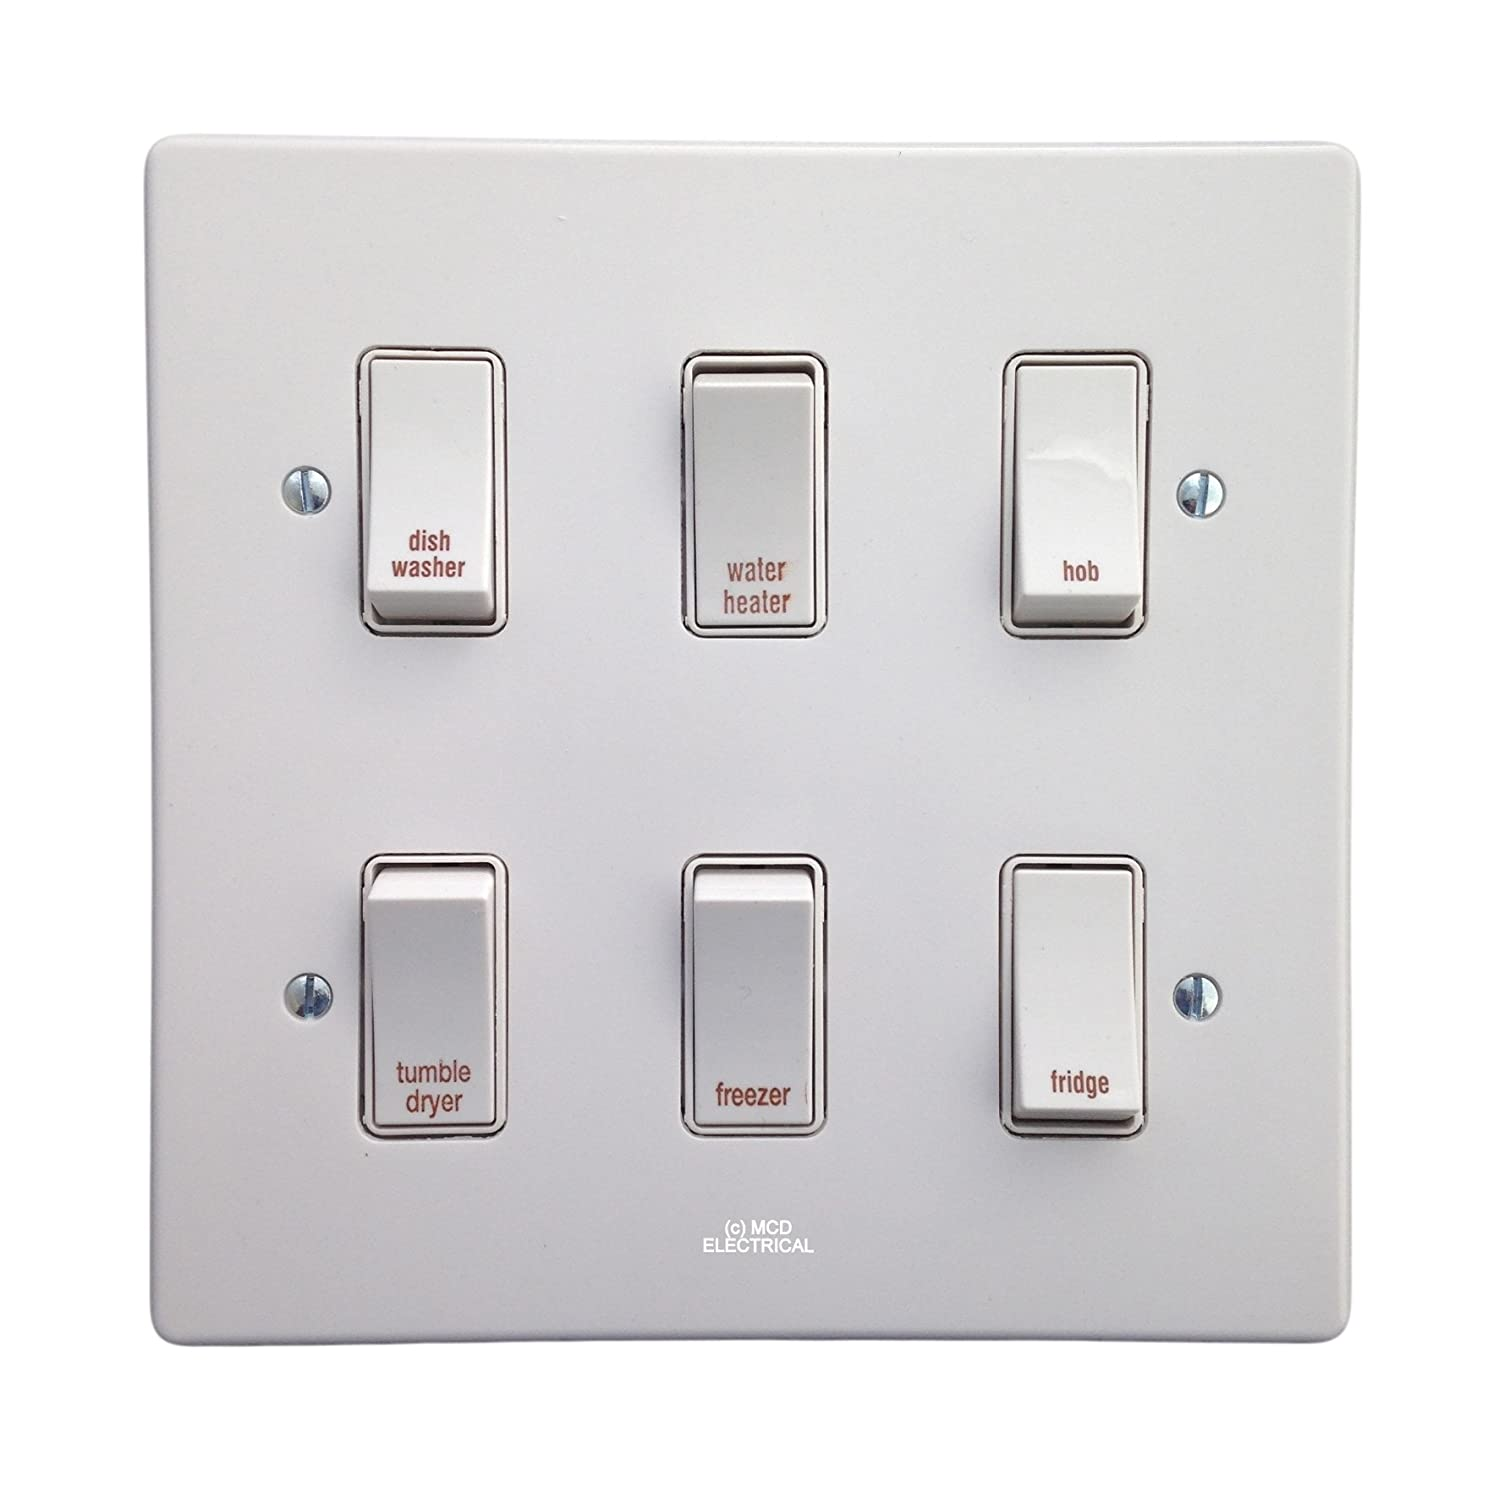 Crabtree Kitchen Grid Control Switch Large Appliances 4 Way Isolator